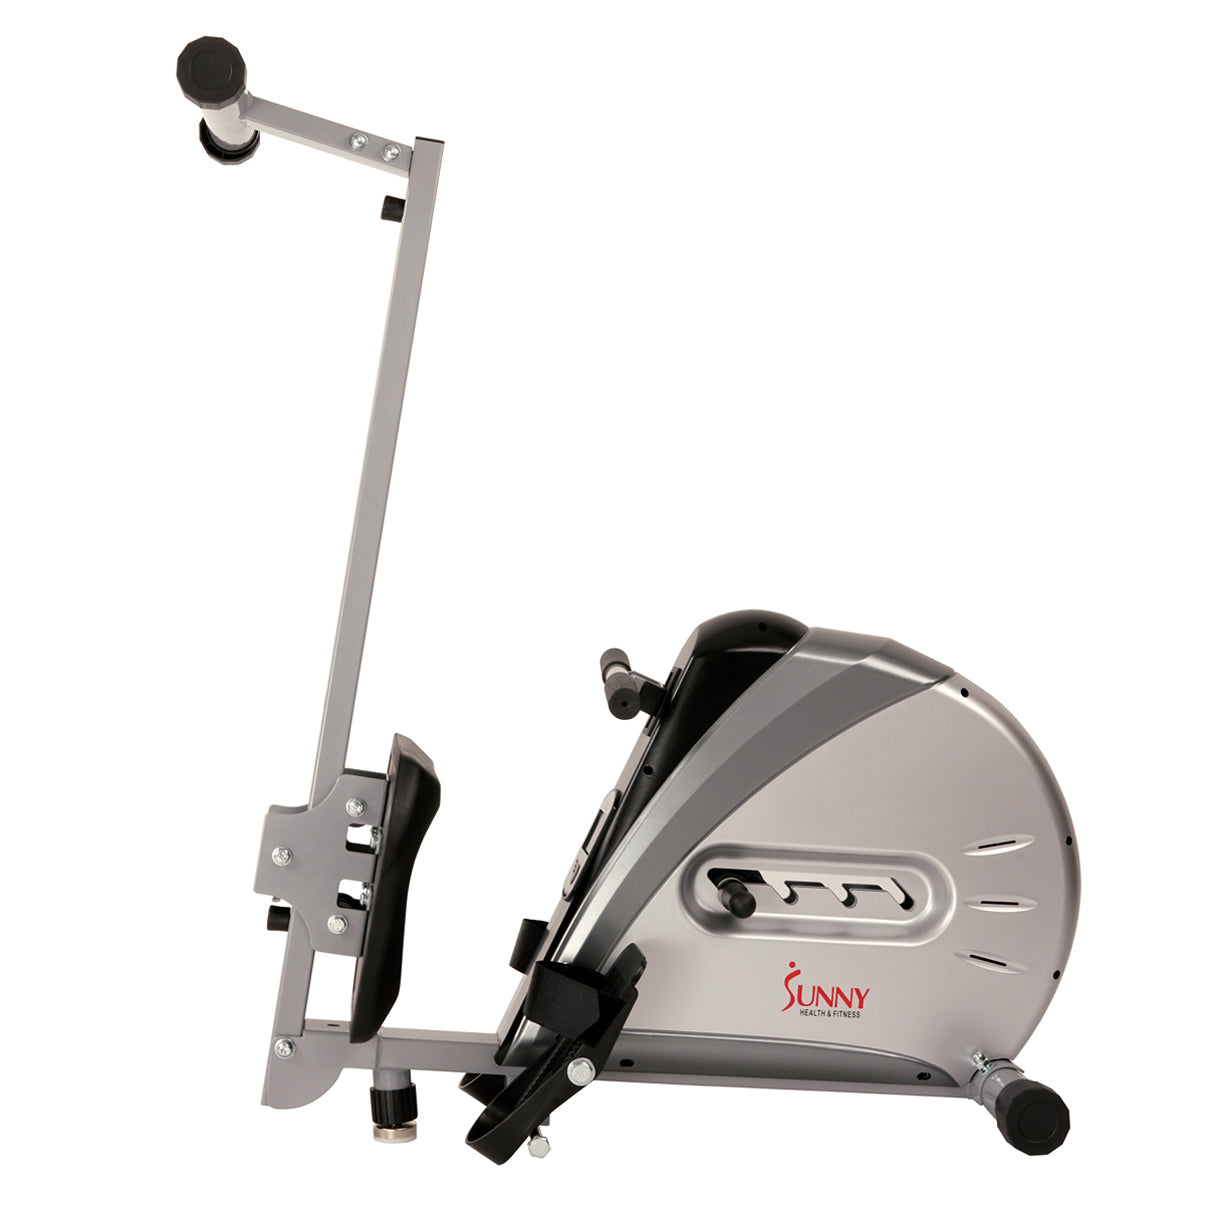 sunny-health-fitness-rowers-elastic-cord-rowing-machine-rower-LCD-monitor-SF-RW5606-foldable